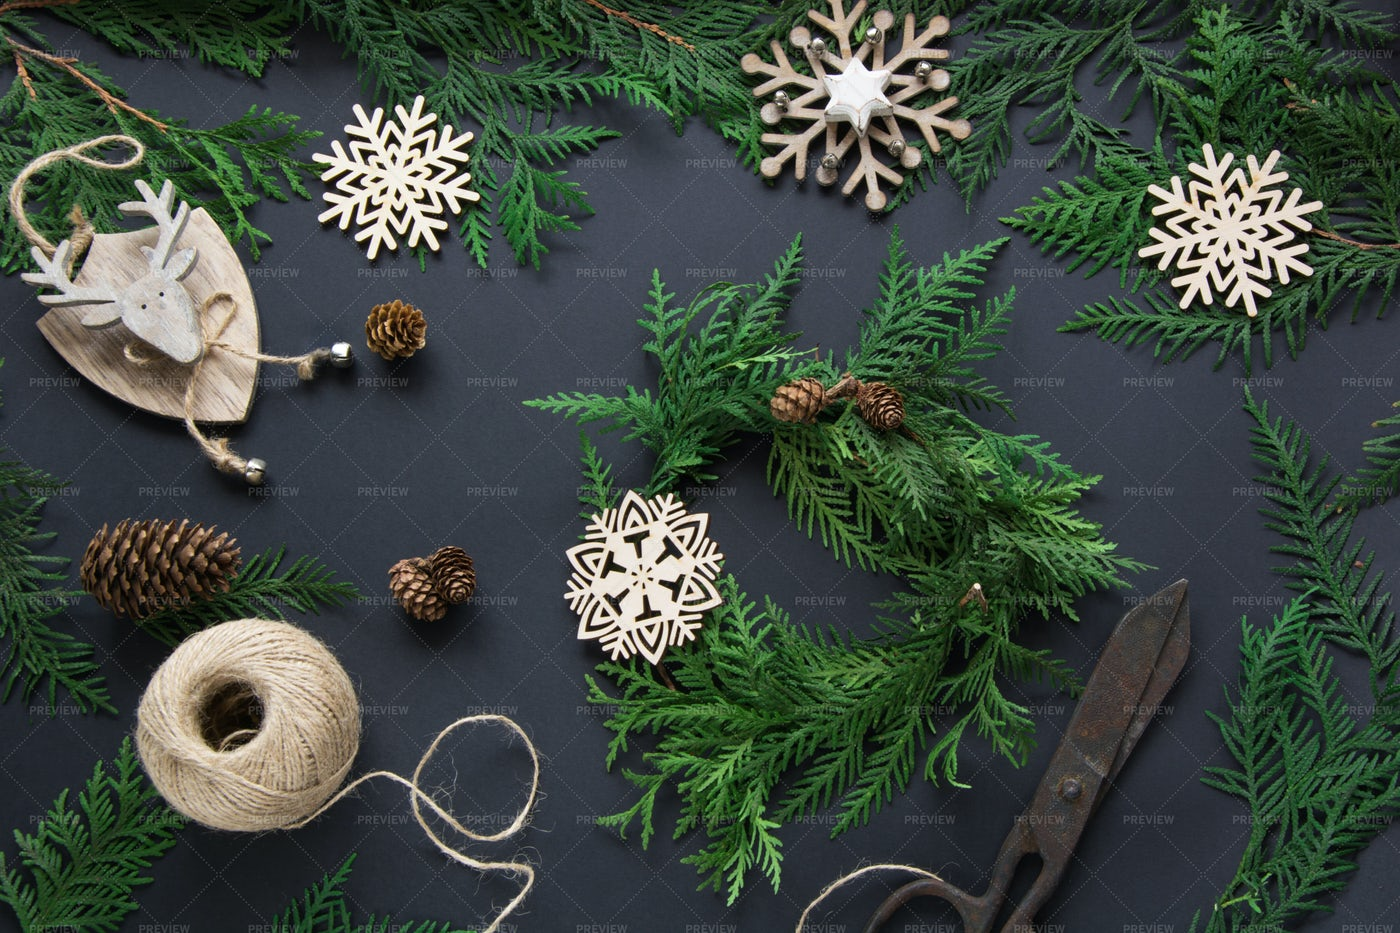 Christmas Holiday Decorations: Stock Photos